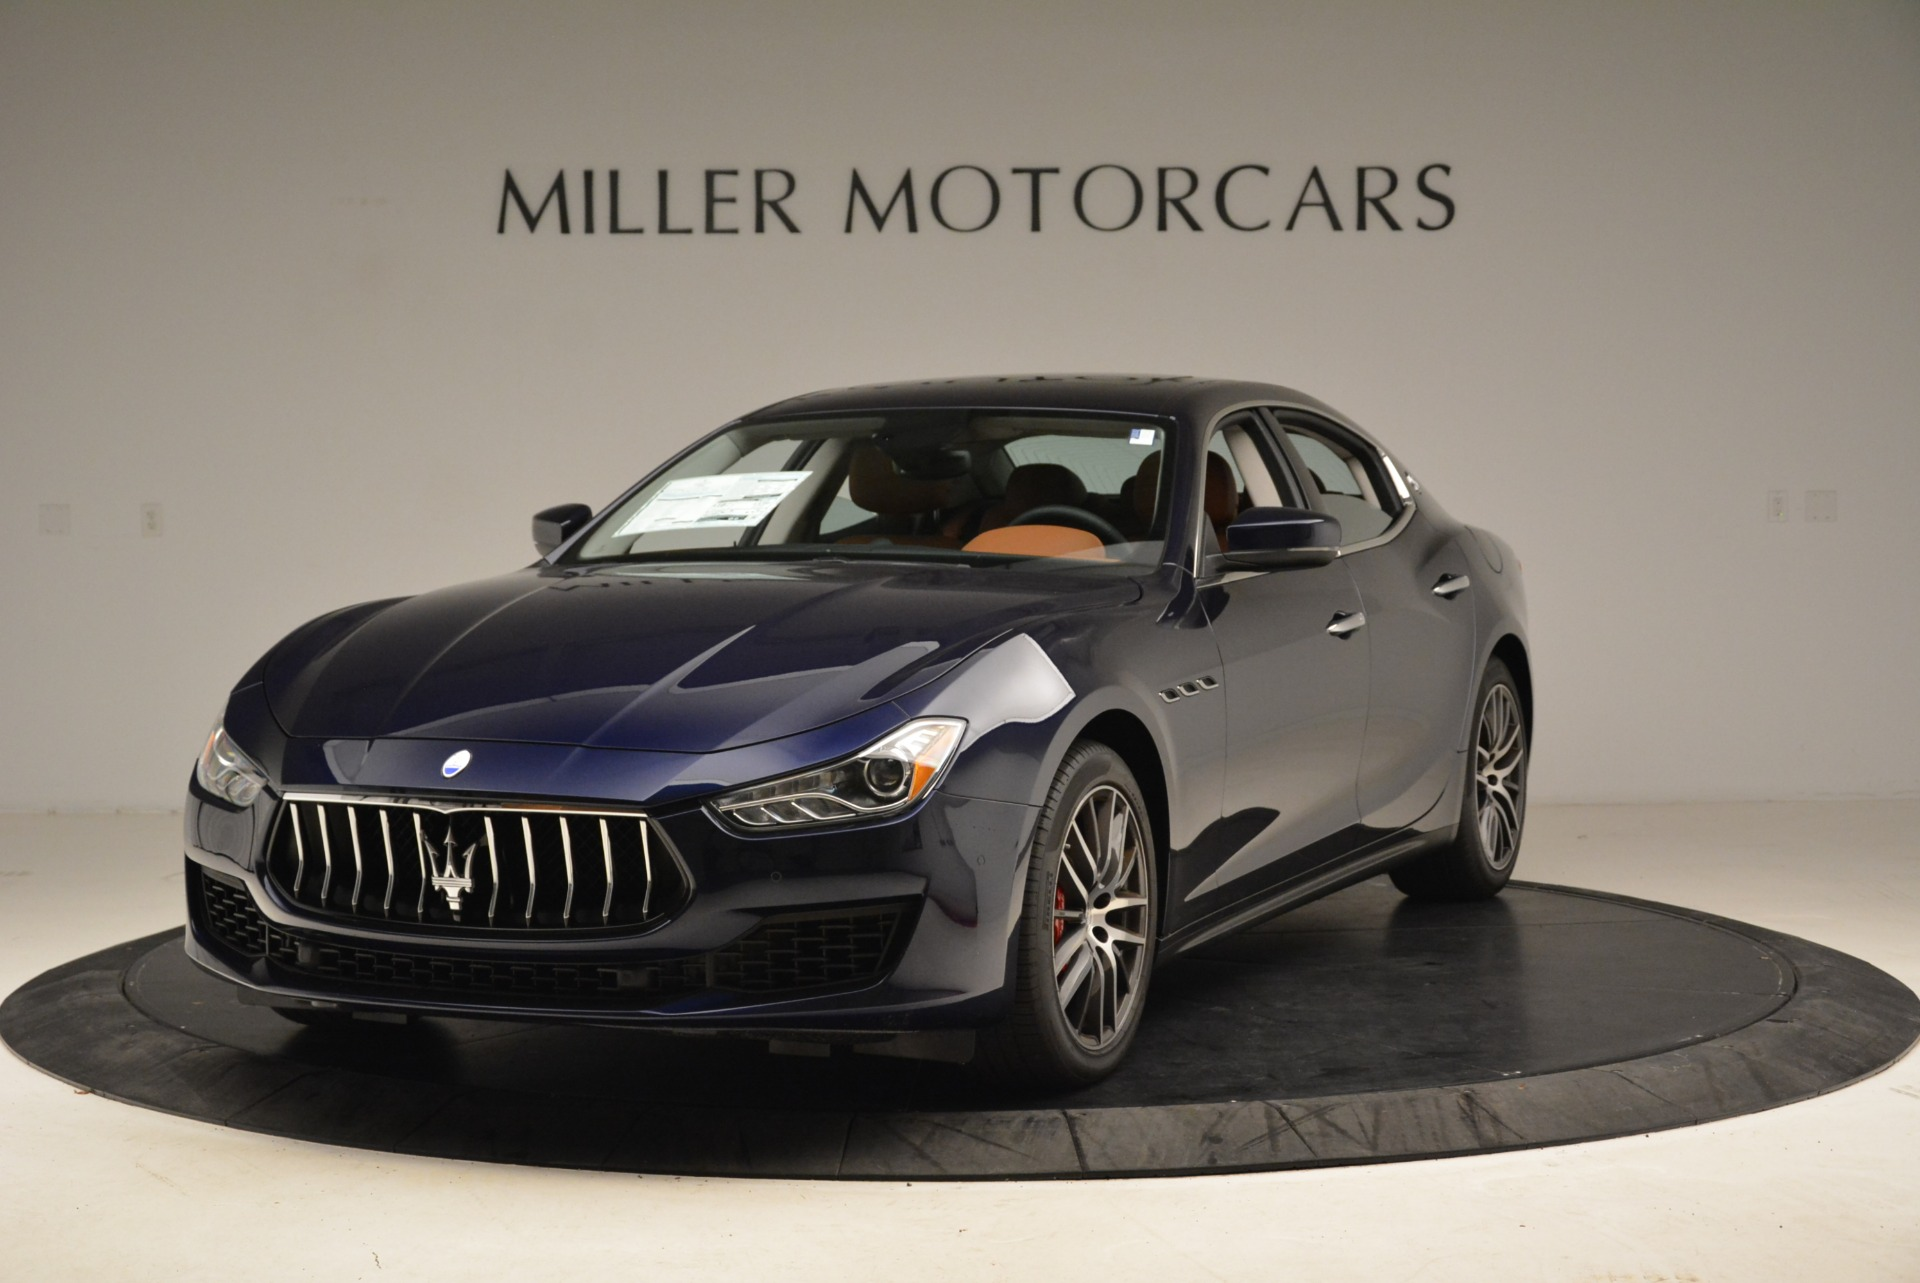 New 2019 Maserati Ghibli S Q4 For Sale In Westport, CT 3018_main